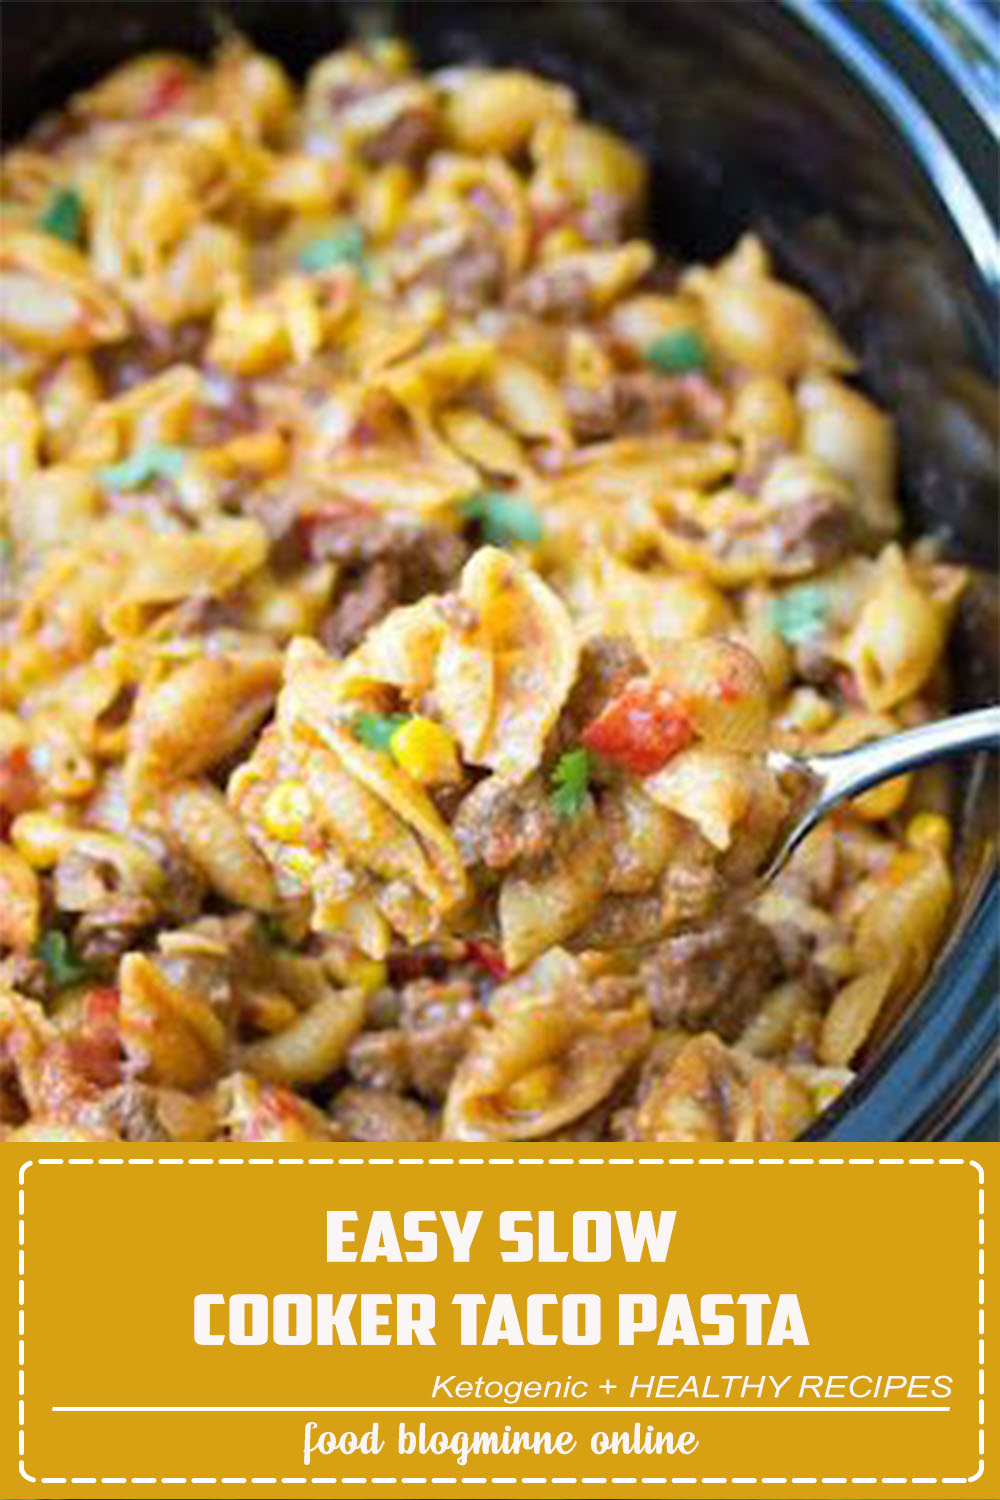 Prep the ingredients for this Easy Slow Cooker Taco Pasta the night before and then start it cooking in your crock pot when you are ready. With just 10 minutes prep, this comforting pasta dish couldn't be easier or faster to make!